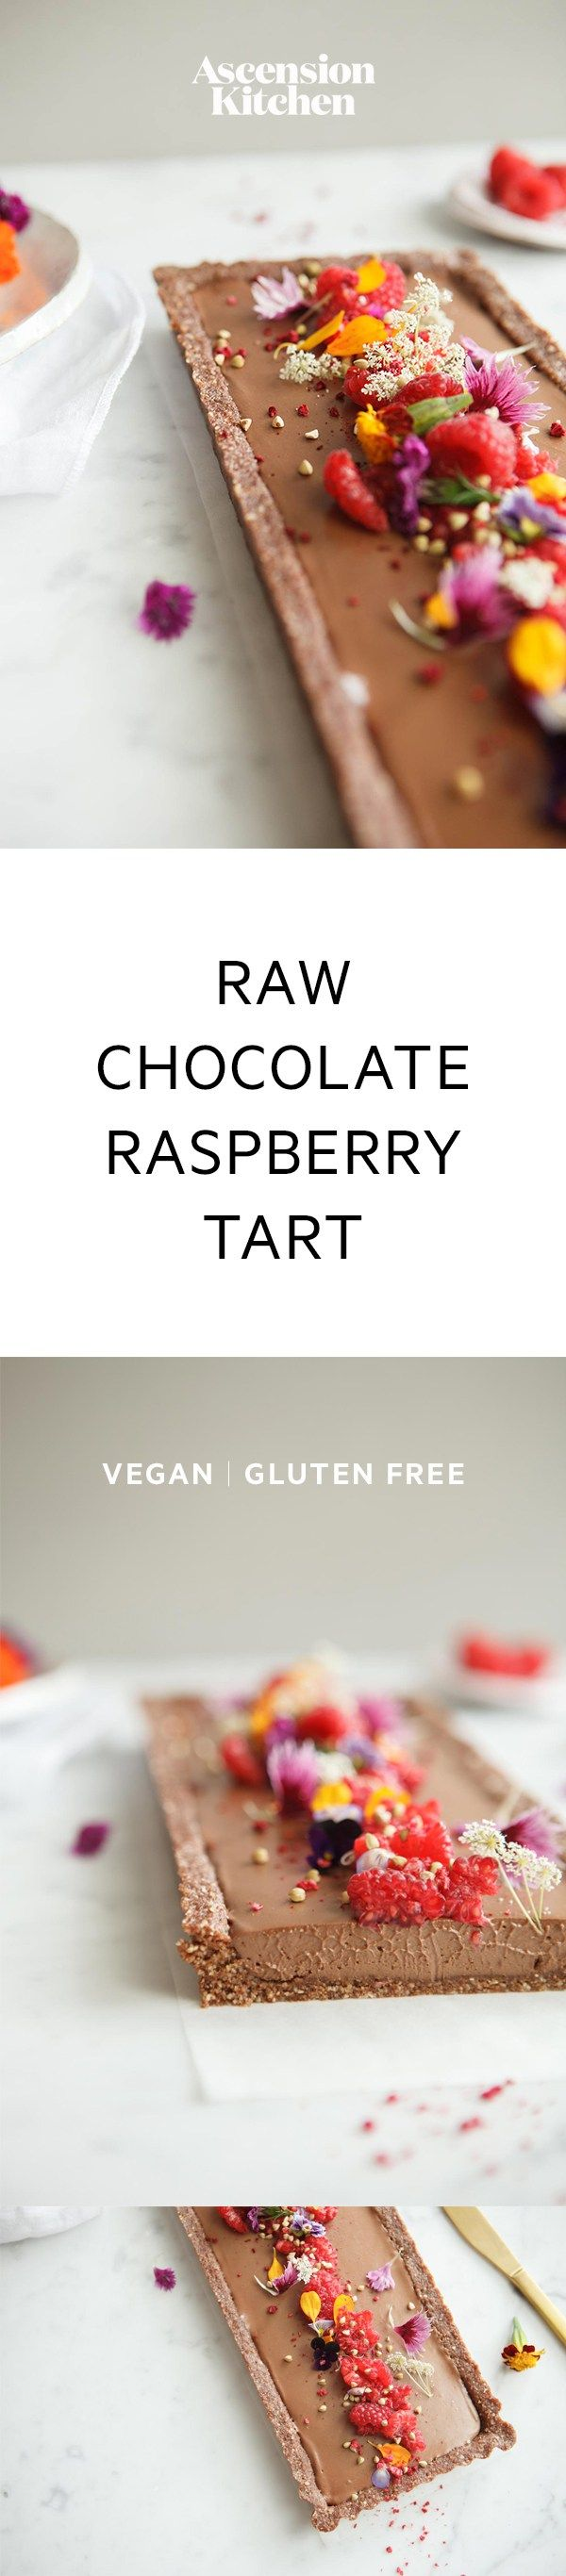 Raw Chocolate Raspberry Tart infused with Ginger, a Vegan Recipe